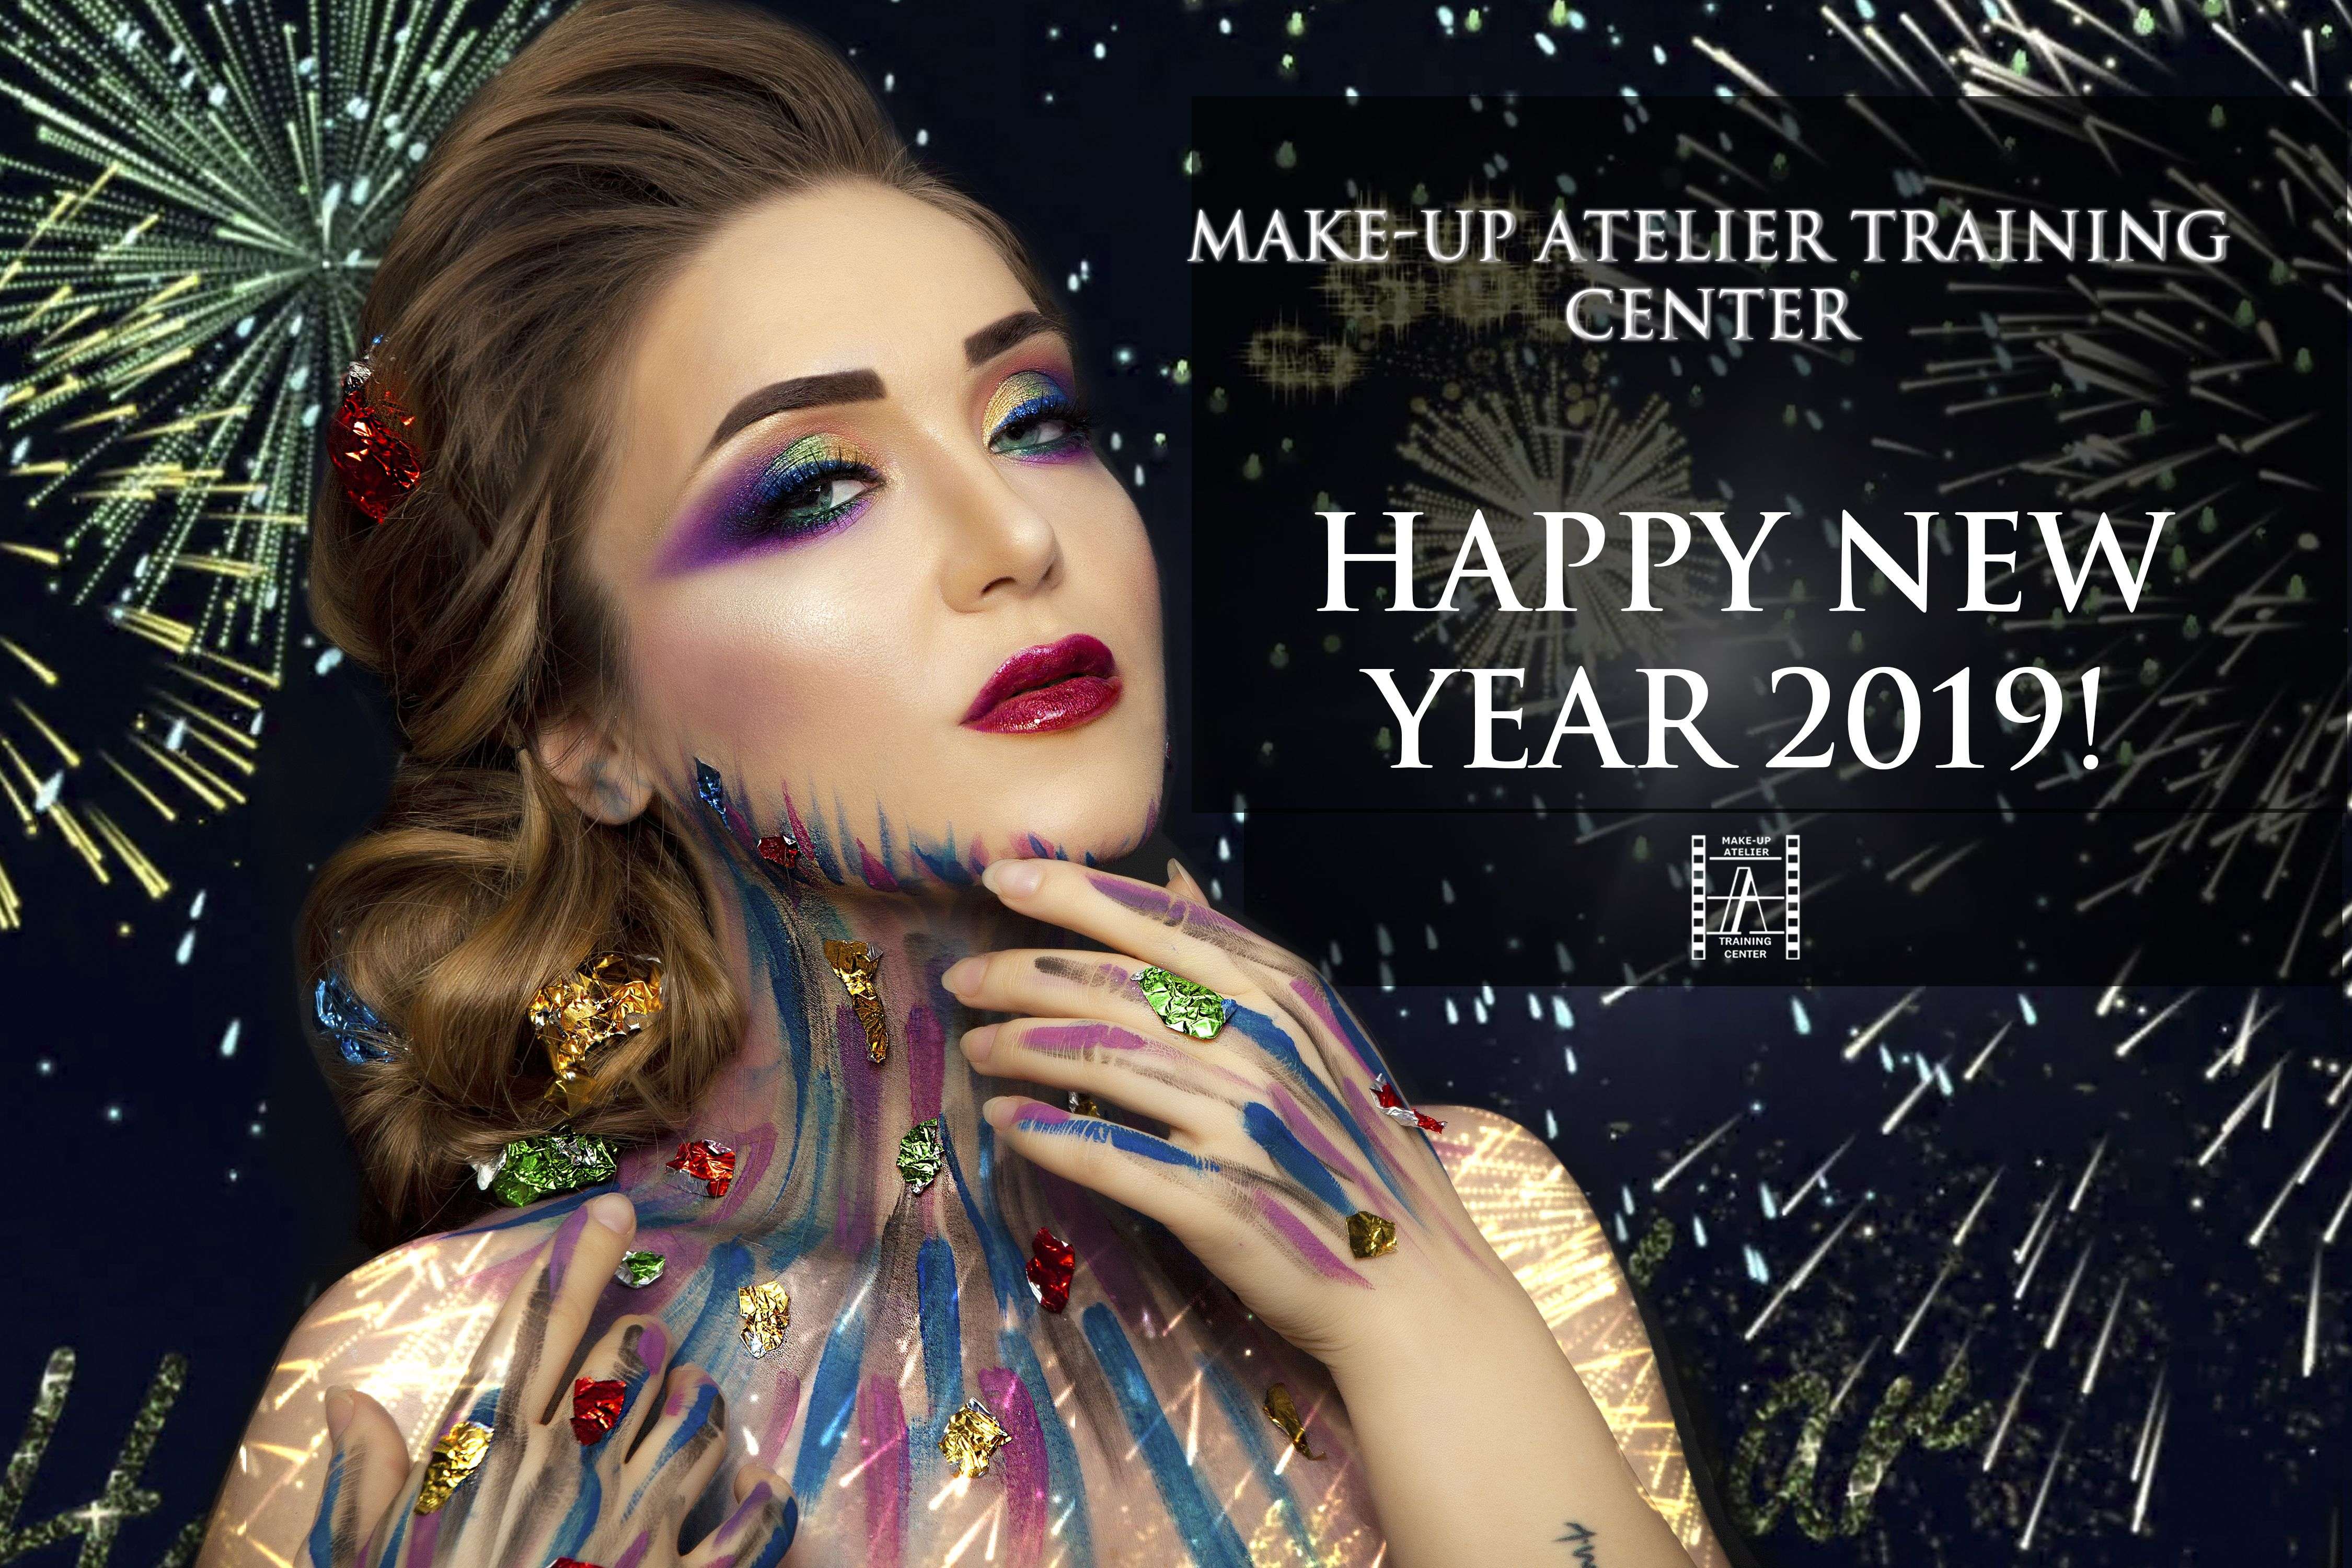 Make Up Atelier Training Center Wishes You A Happy New Year 2019 Creative Work By Our Team Make Up Artist Zinaida Makeup Course Beauty Academy School Makeup